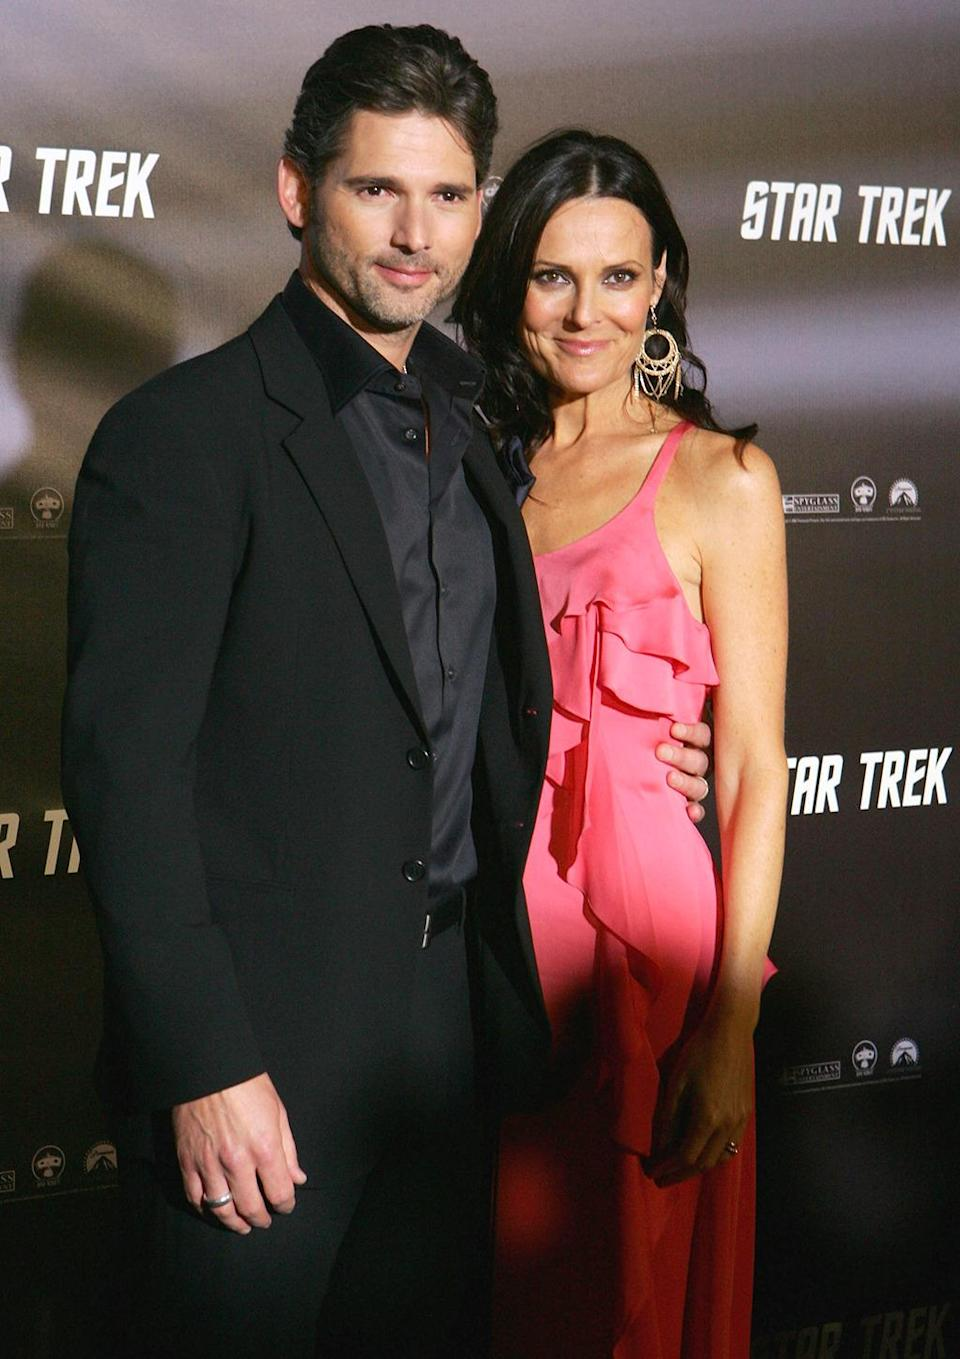 <p>Eric Bana with wife Rebecca Gleeson. Bana stars in the reboot as the Romulan, the Enterprise crew's time-traveling antagonist. <i>(Photo: Sergio Dionisio/Getty Images)</i></p>